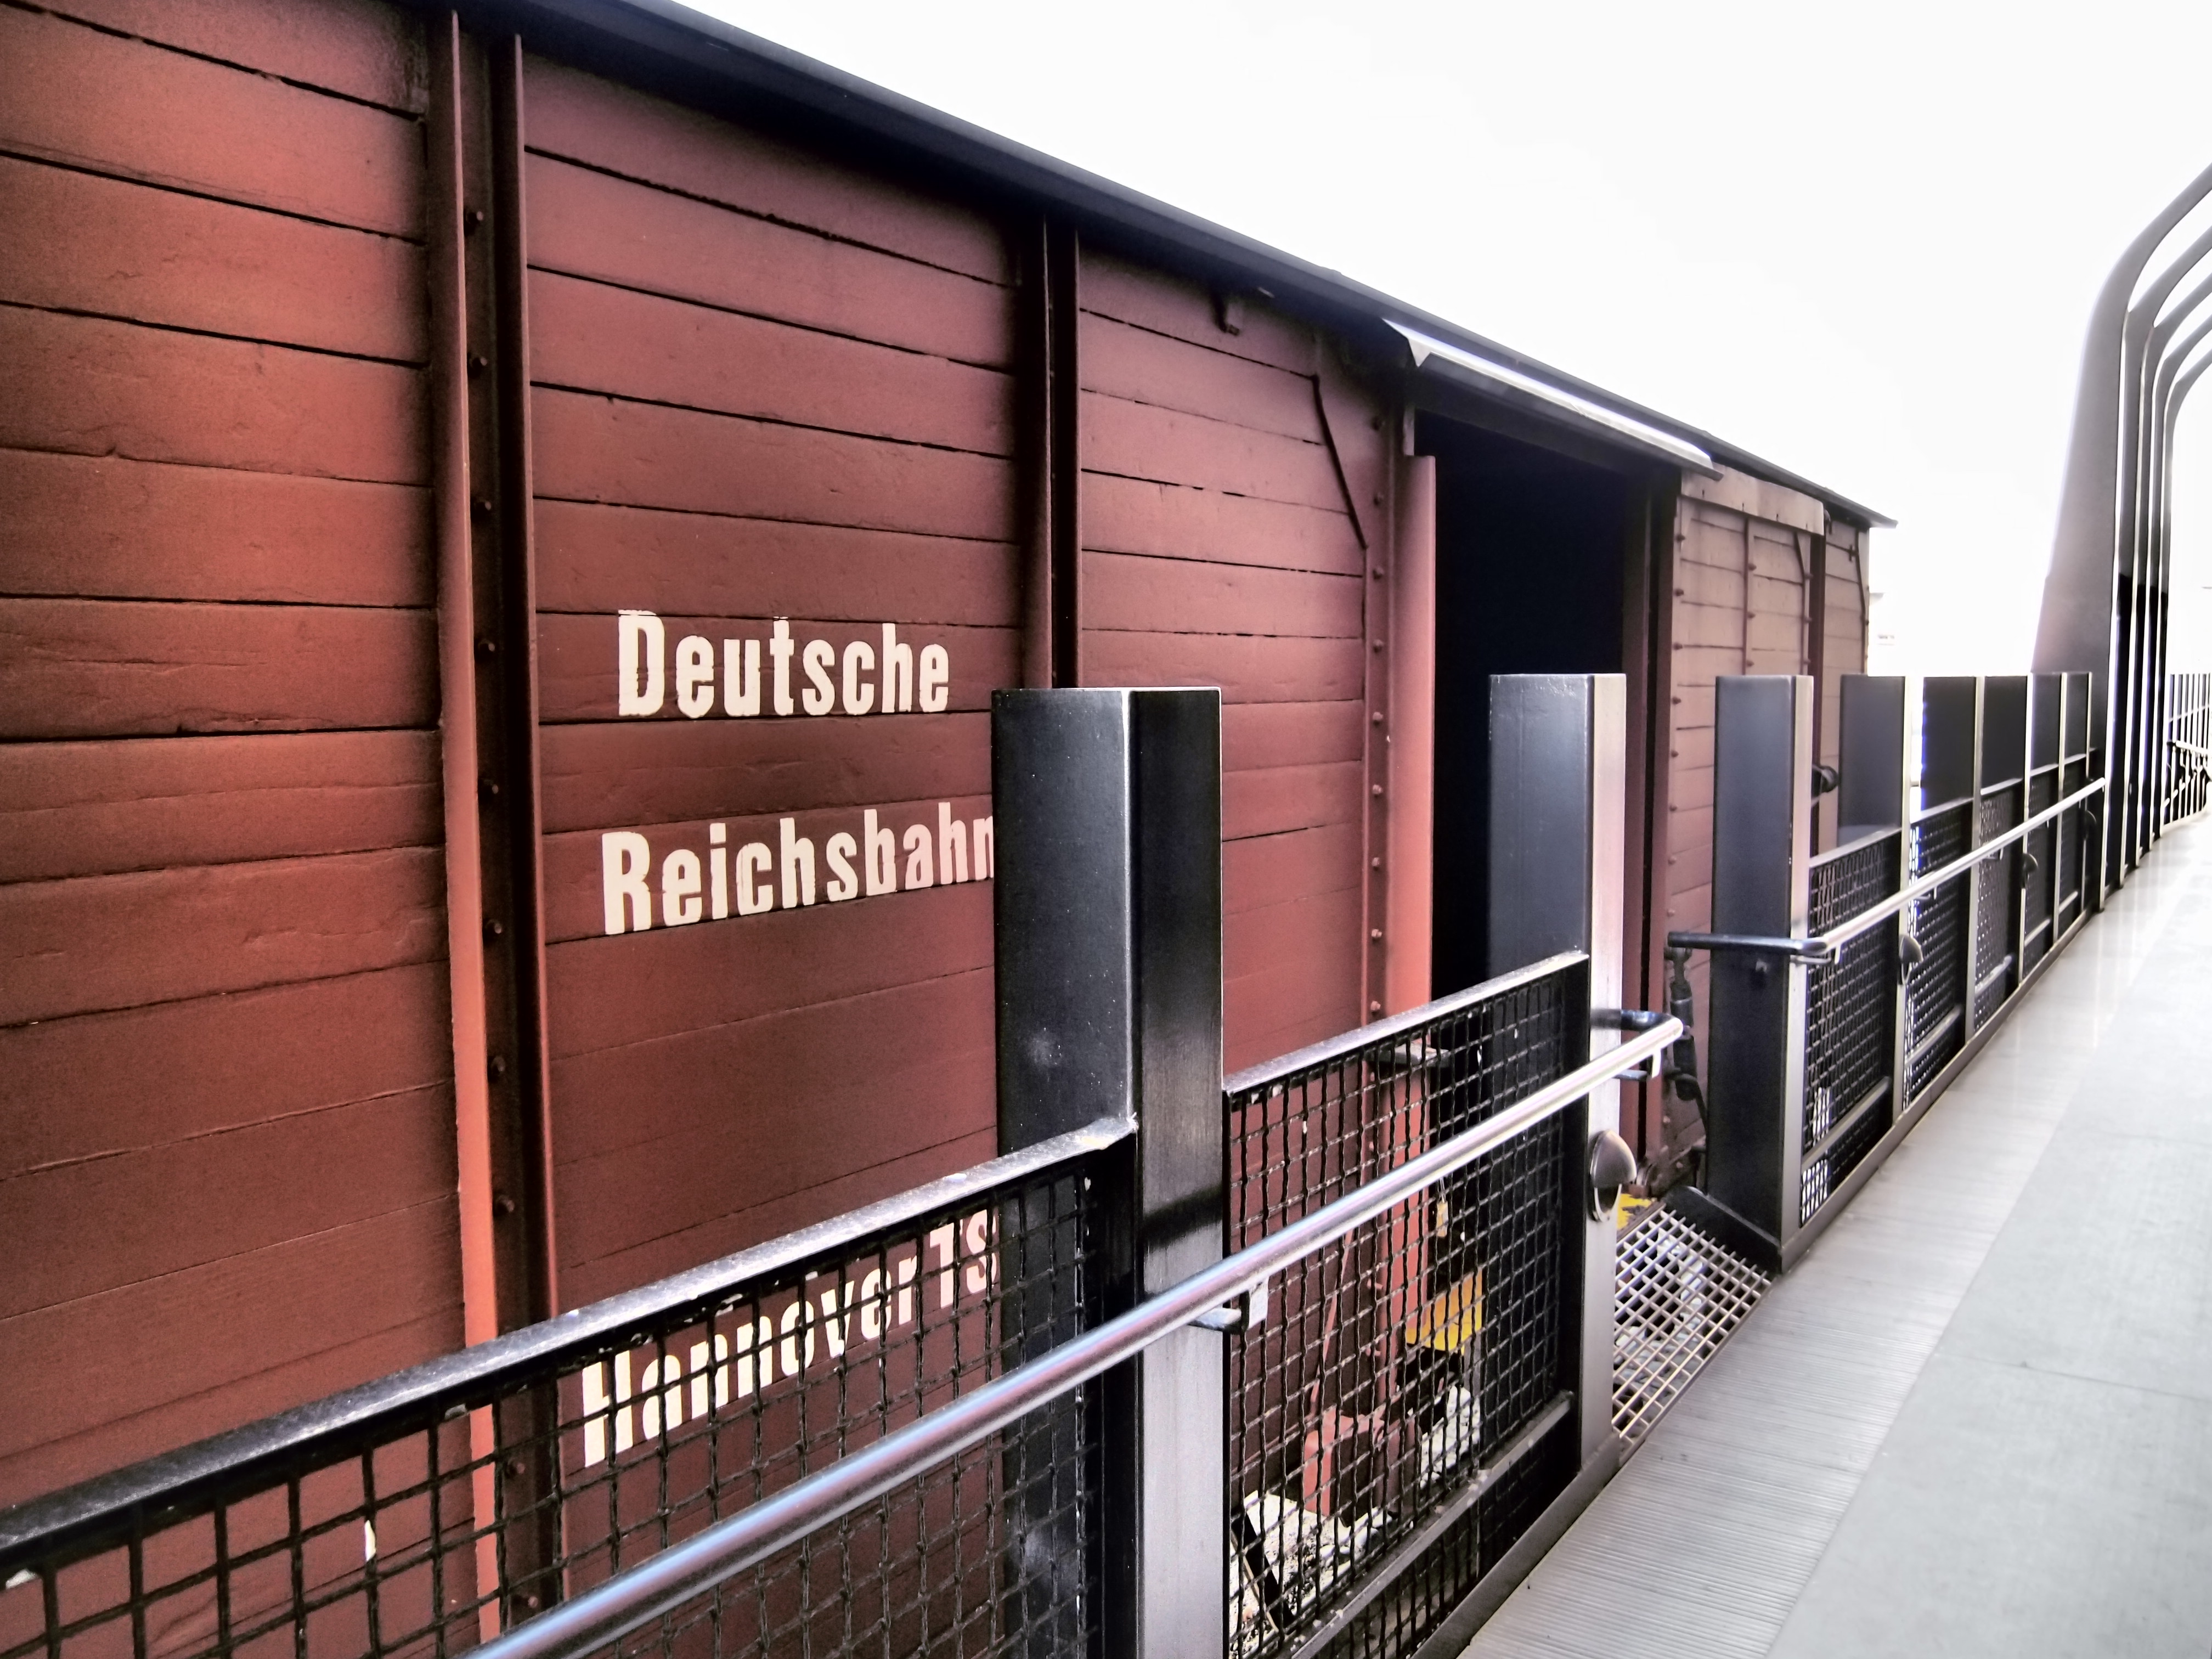 View of our authentic German boxcar.